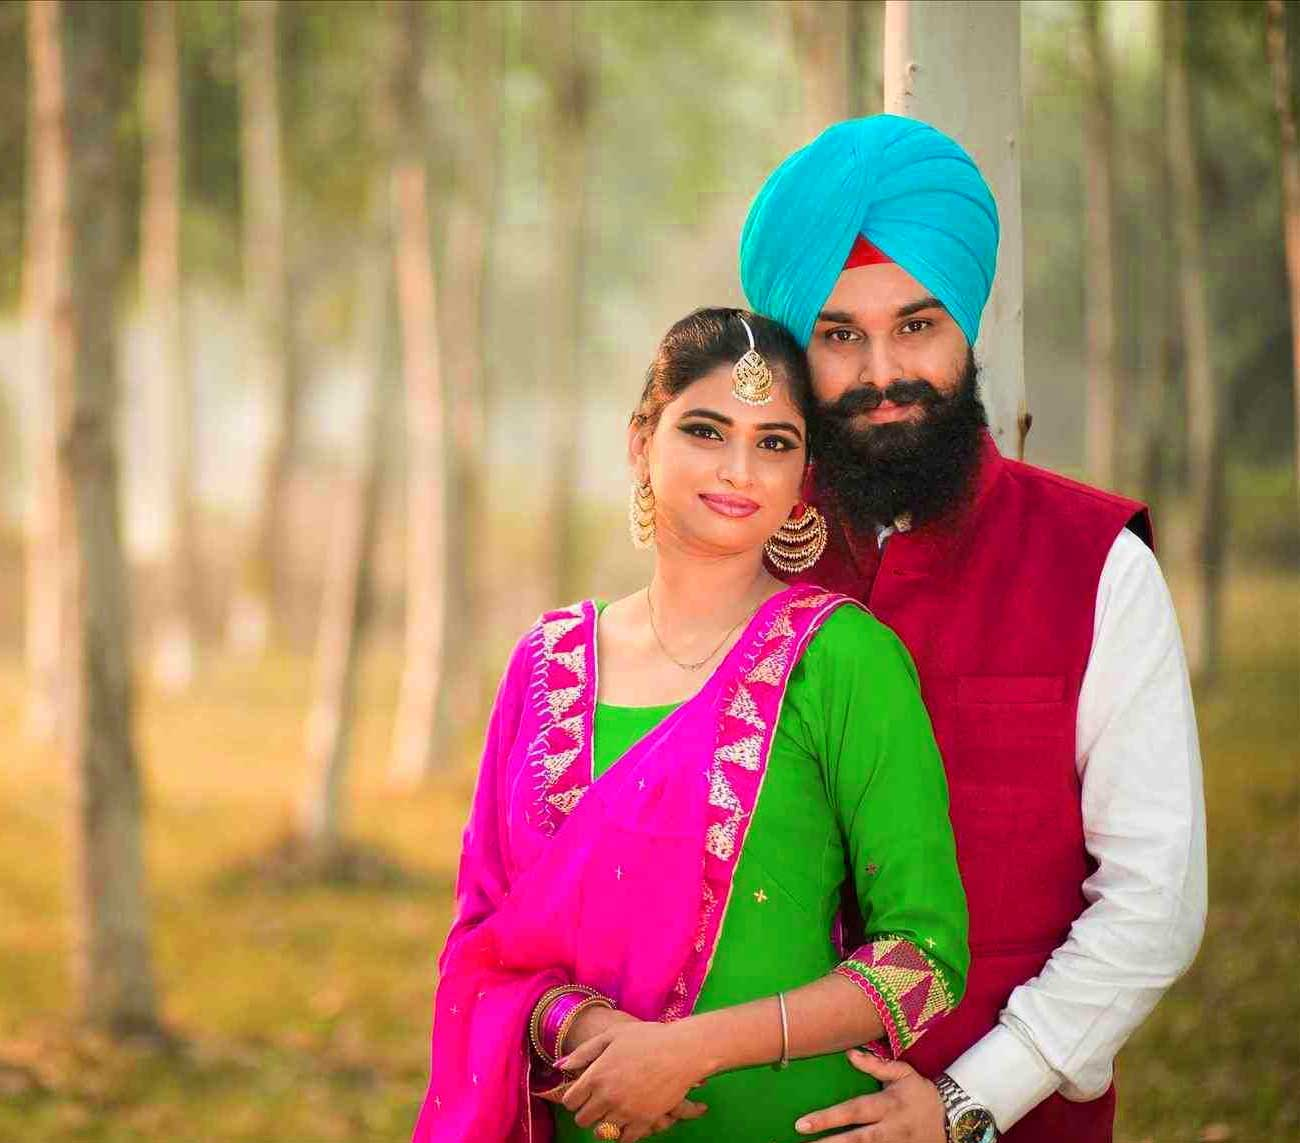 Punjabi Couple Photo Images Free